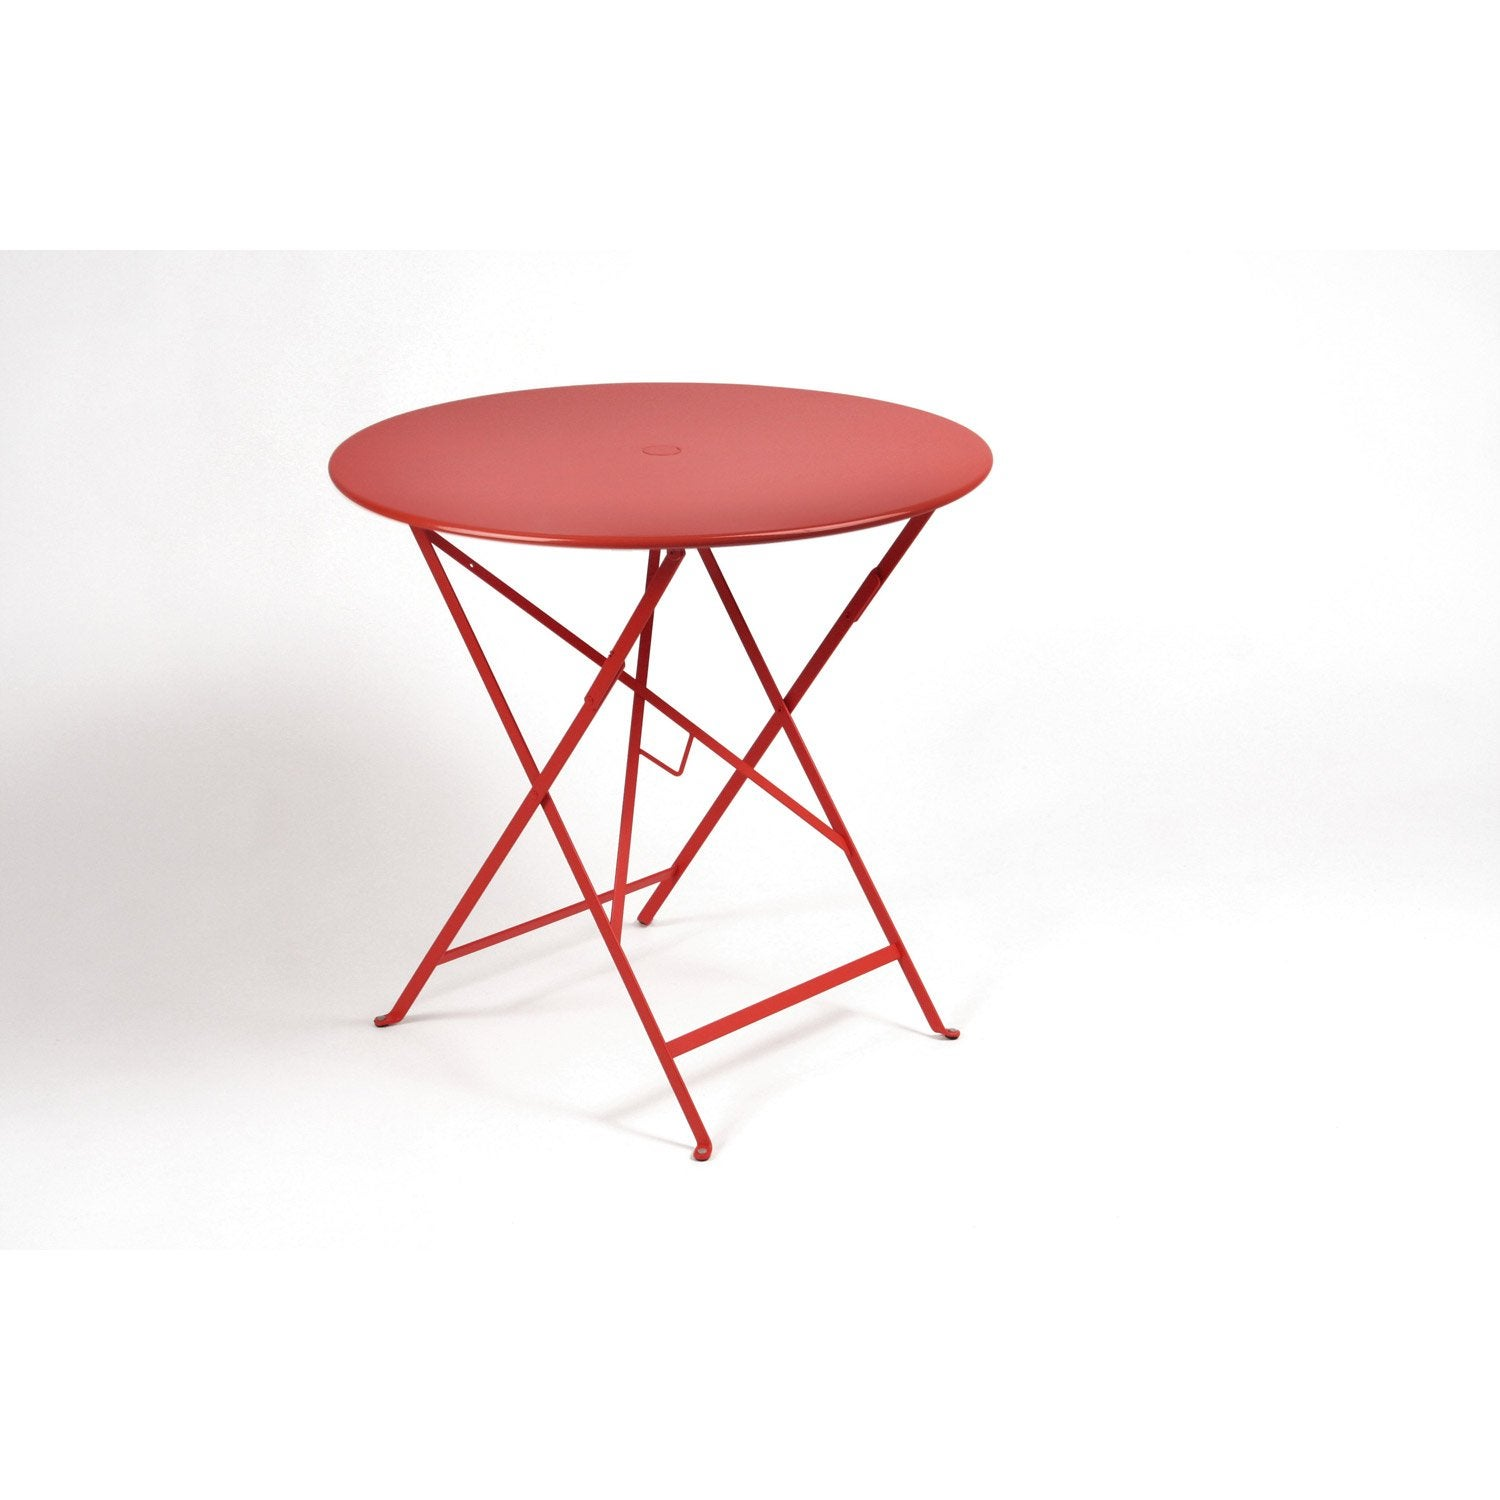 table de jardin fermob bistro ronde coquelicot leroy merlin. Black Bedroom Furniture Sets. Home Design Ideas